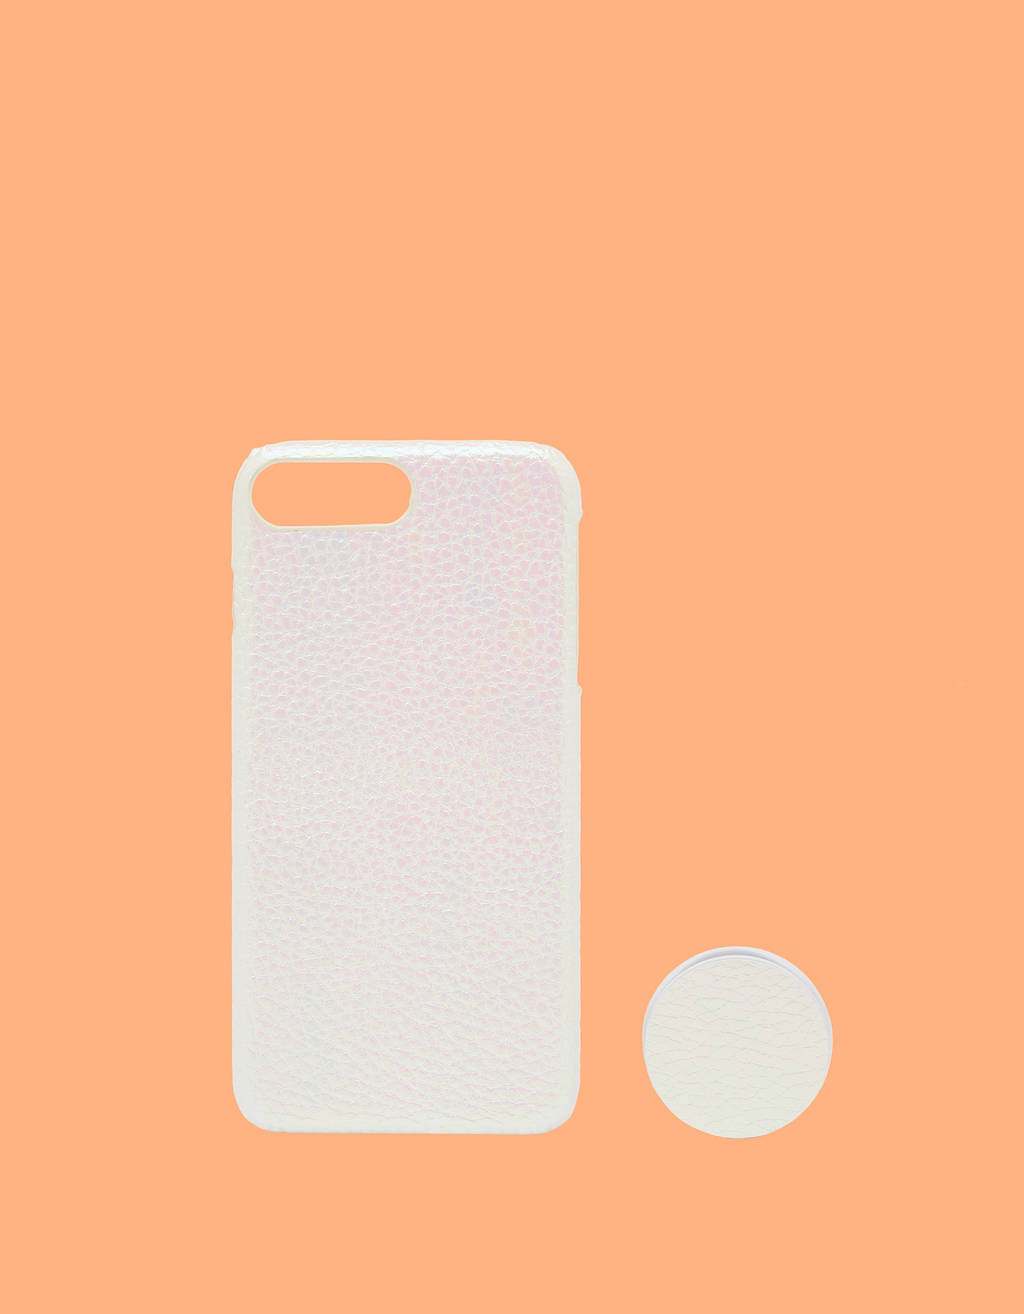 iPhone 6 Plus / 7 Plus / 8 Plus case with adhesive ring